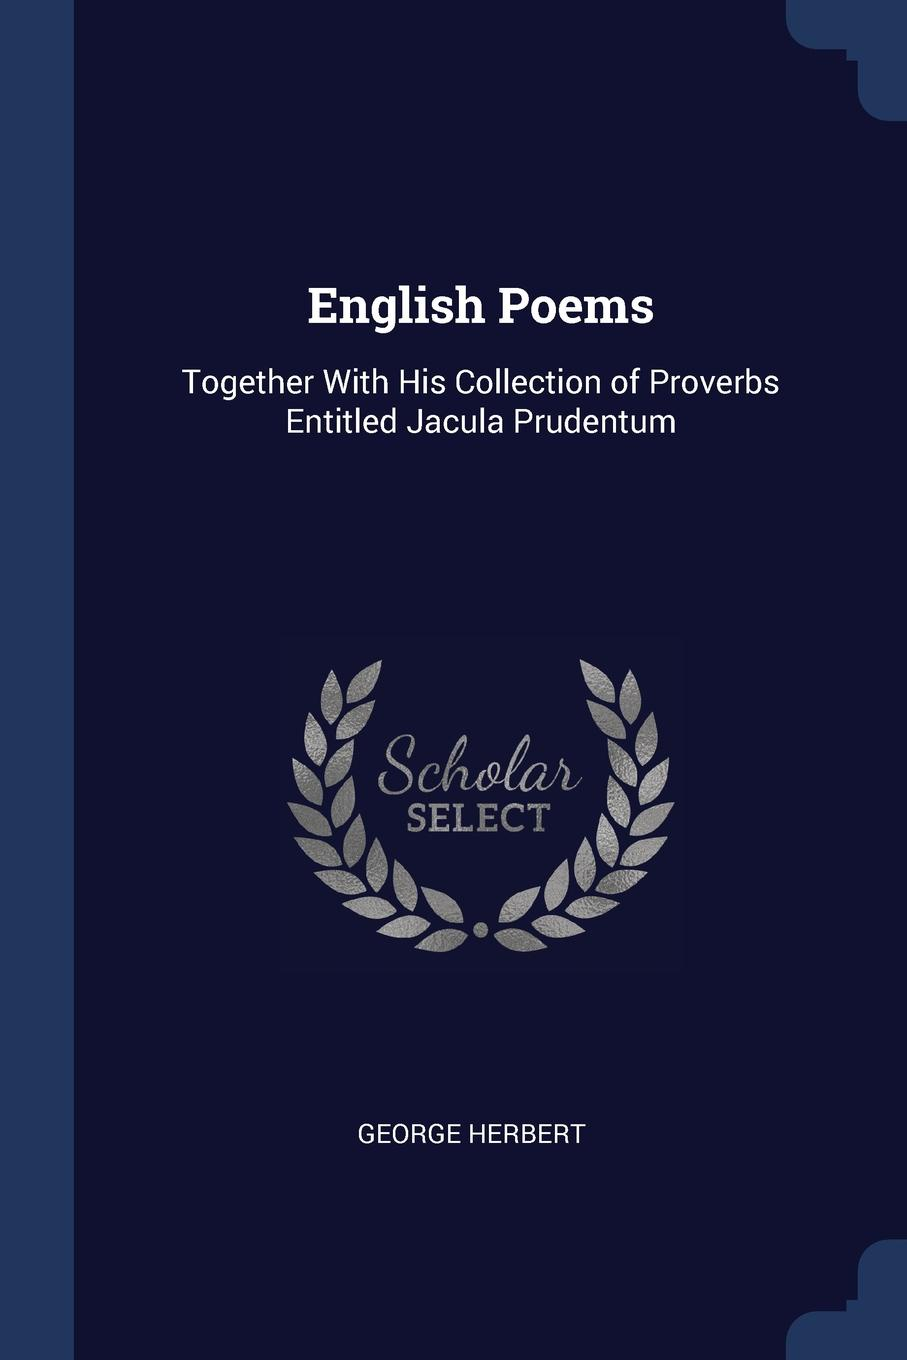 English Poems. Together With His Collection of Proverbs Entitled Jacula Prudentum. George Herbert